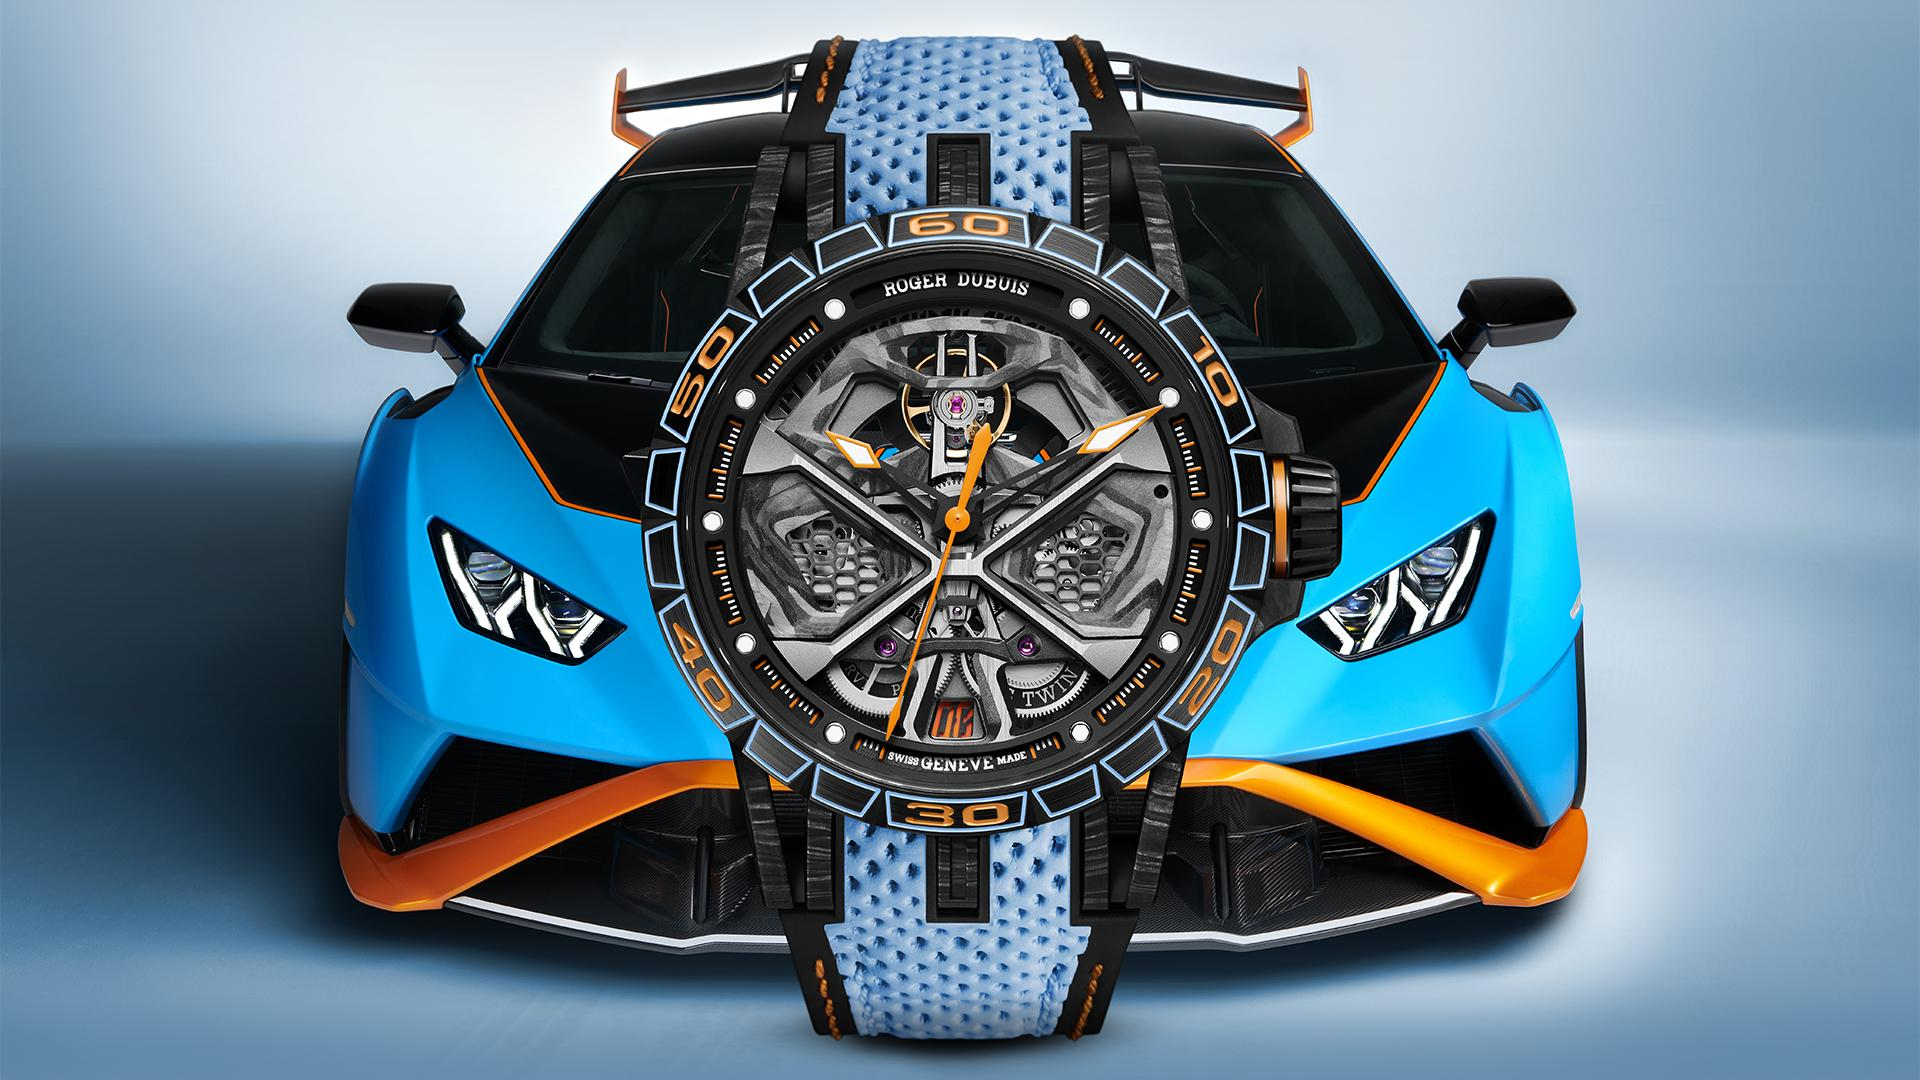 Roger Dubuis Huracán STO, best car-inspired watches